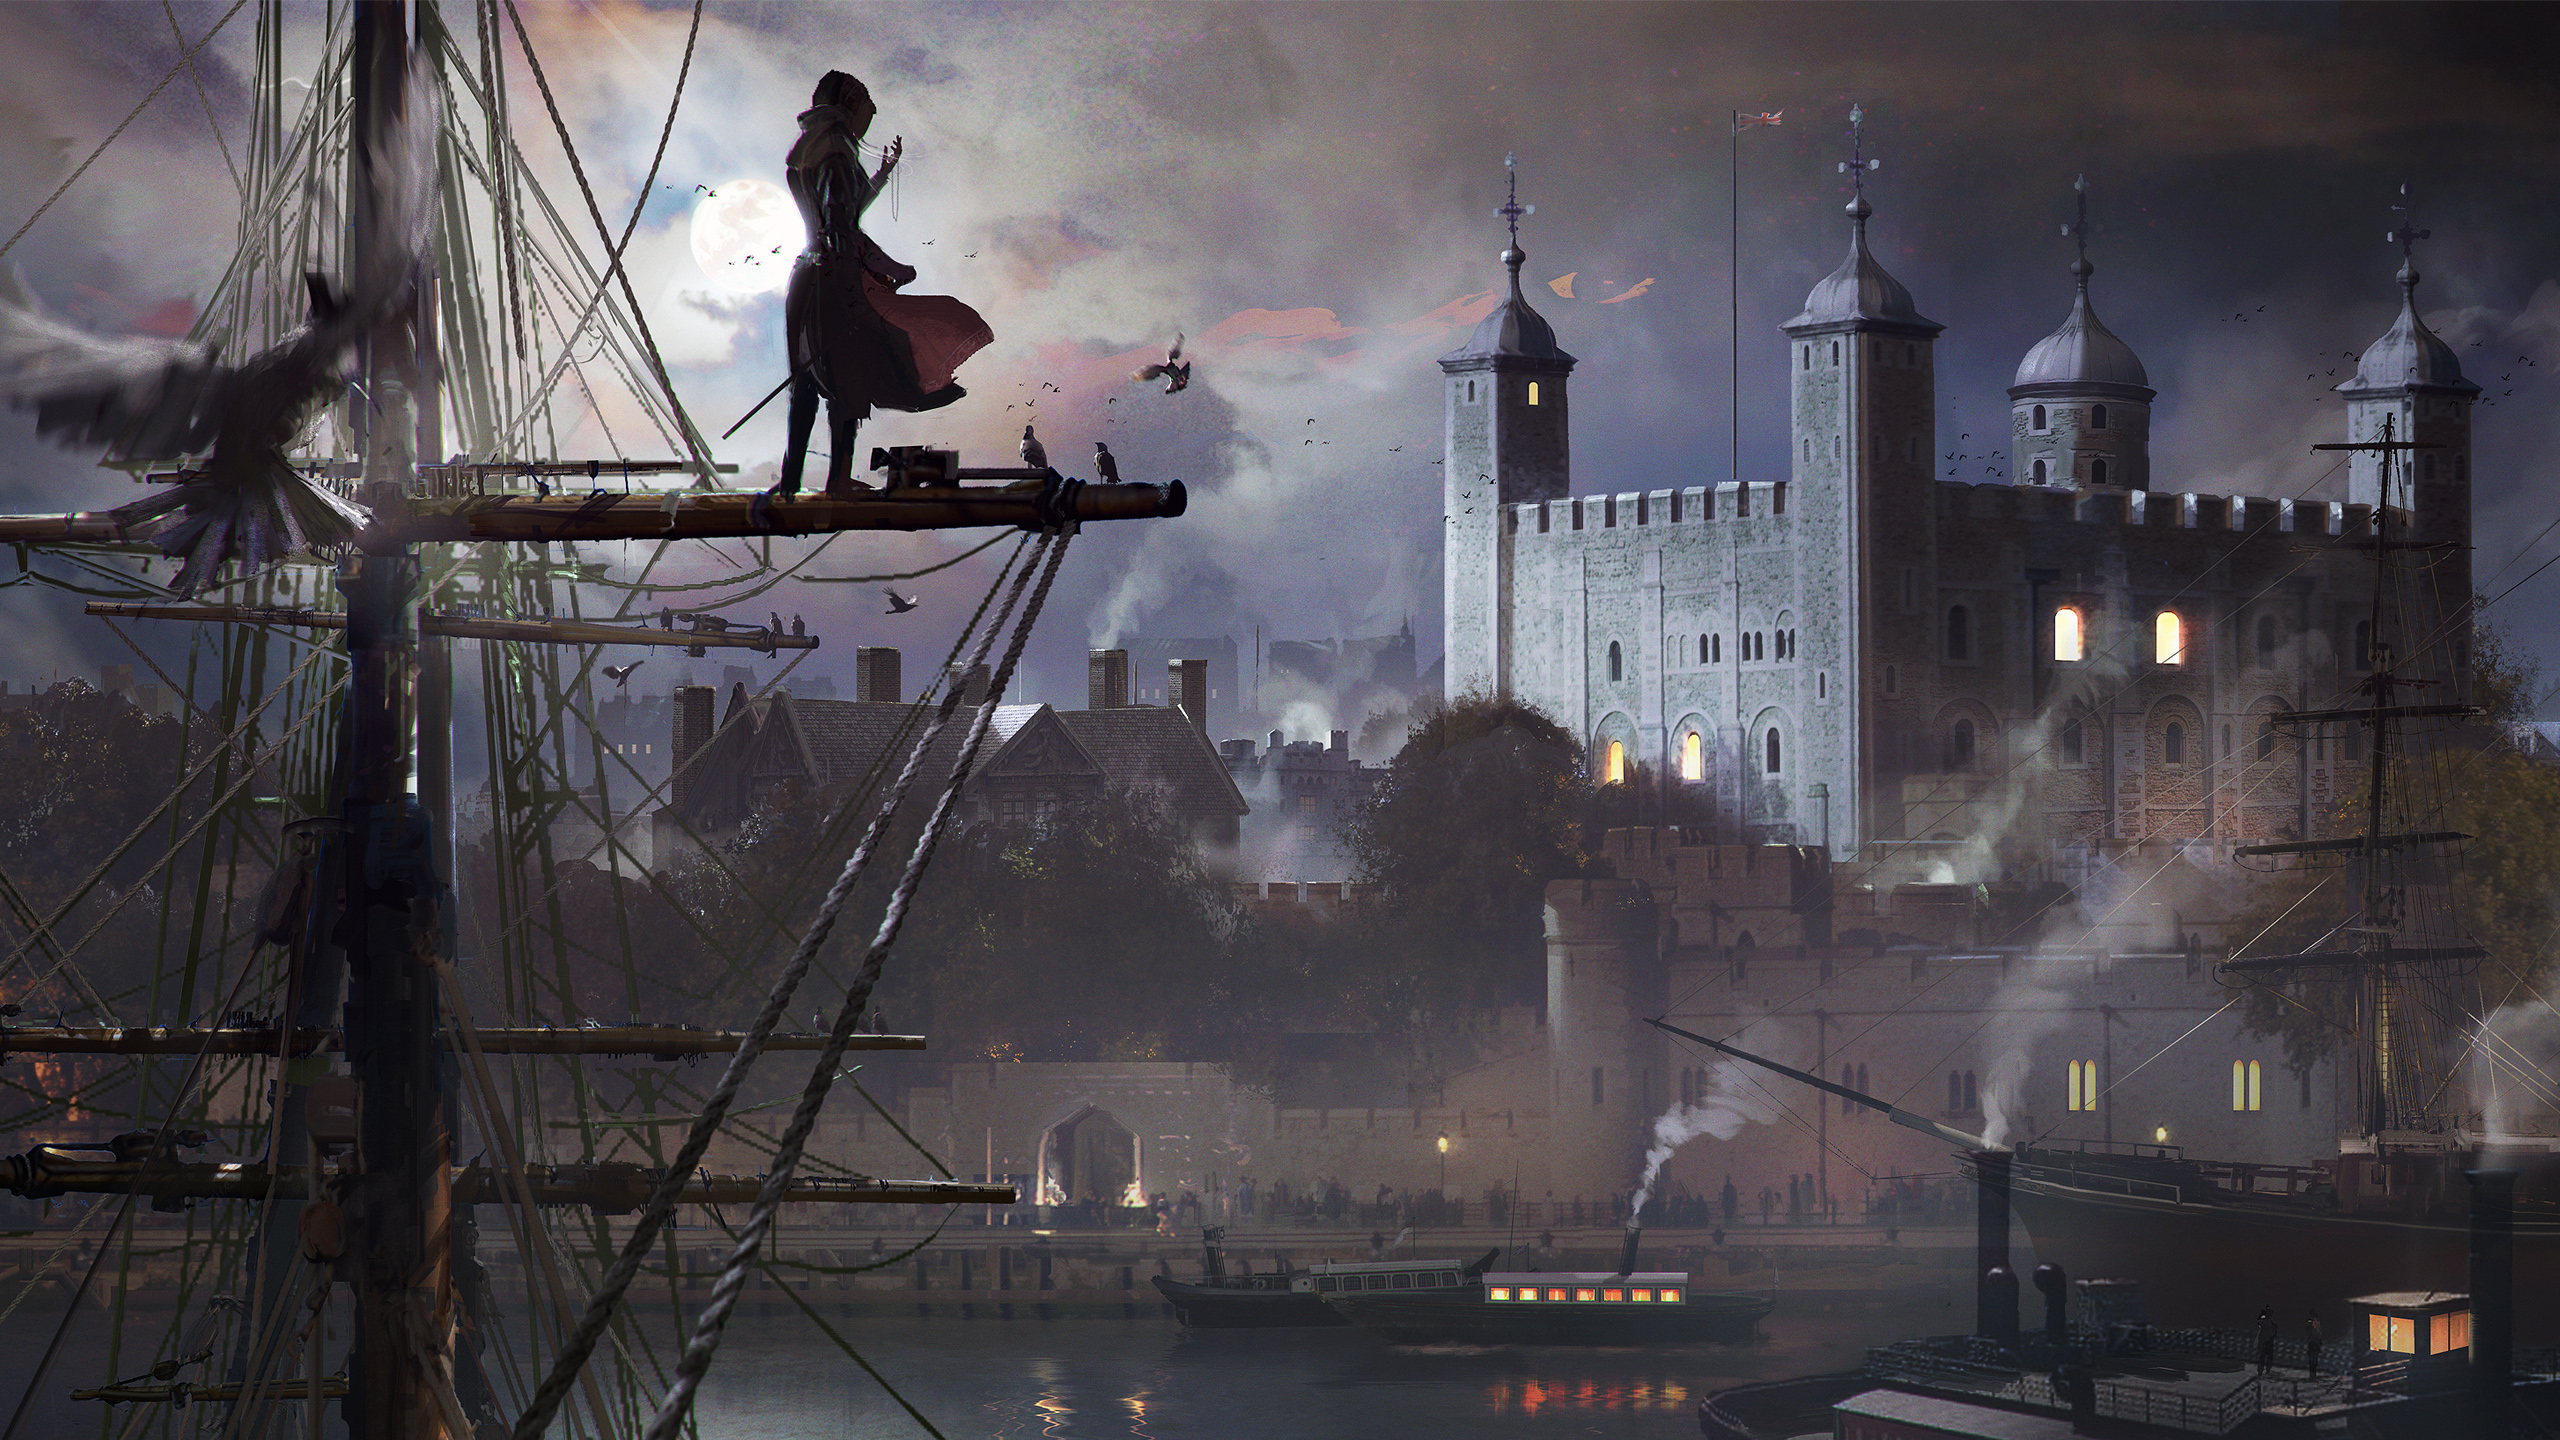 Female Character Assassins Creed Syndicate Wallpapers HD Wallpapers 2560x1440